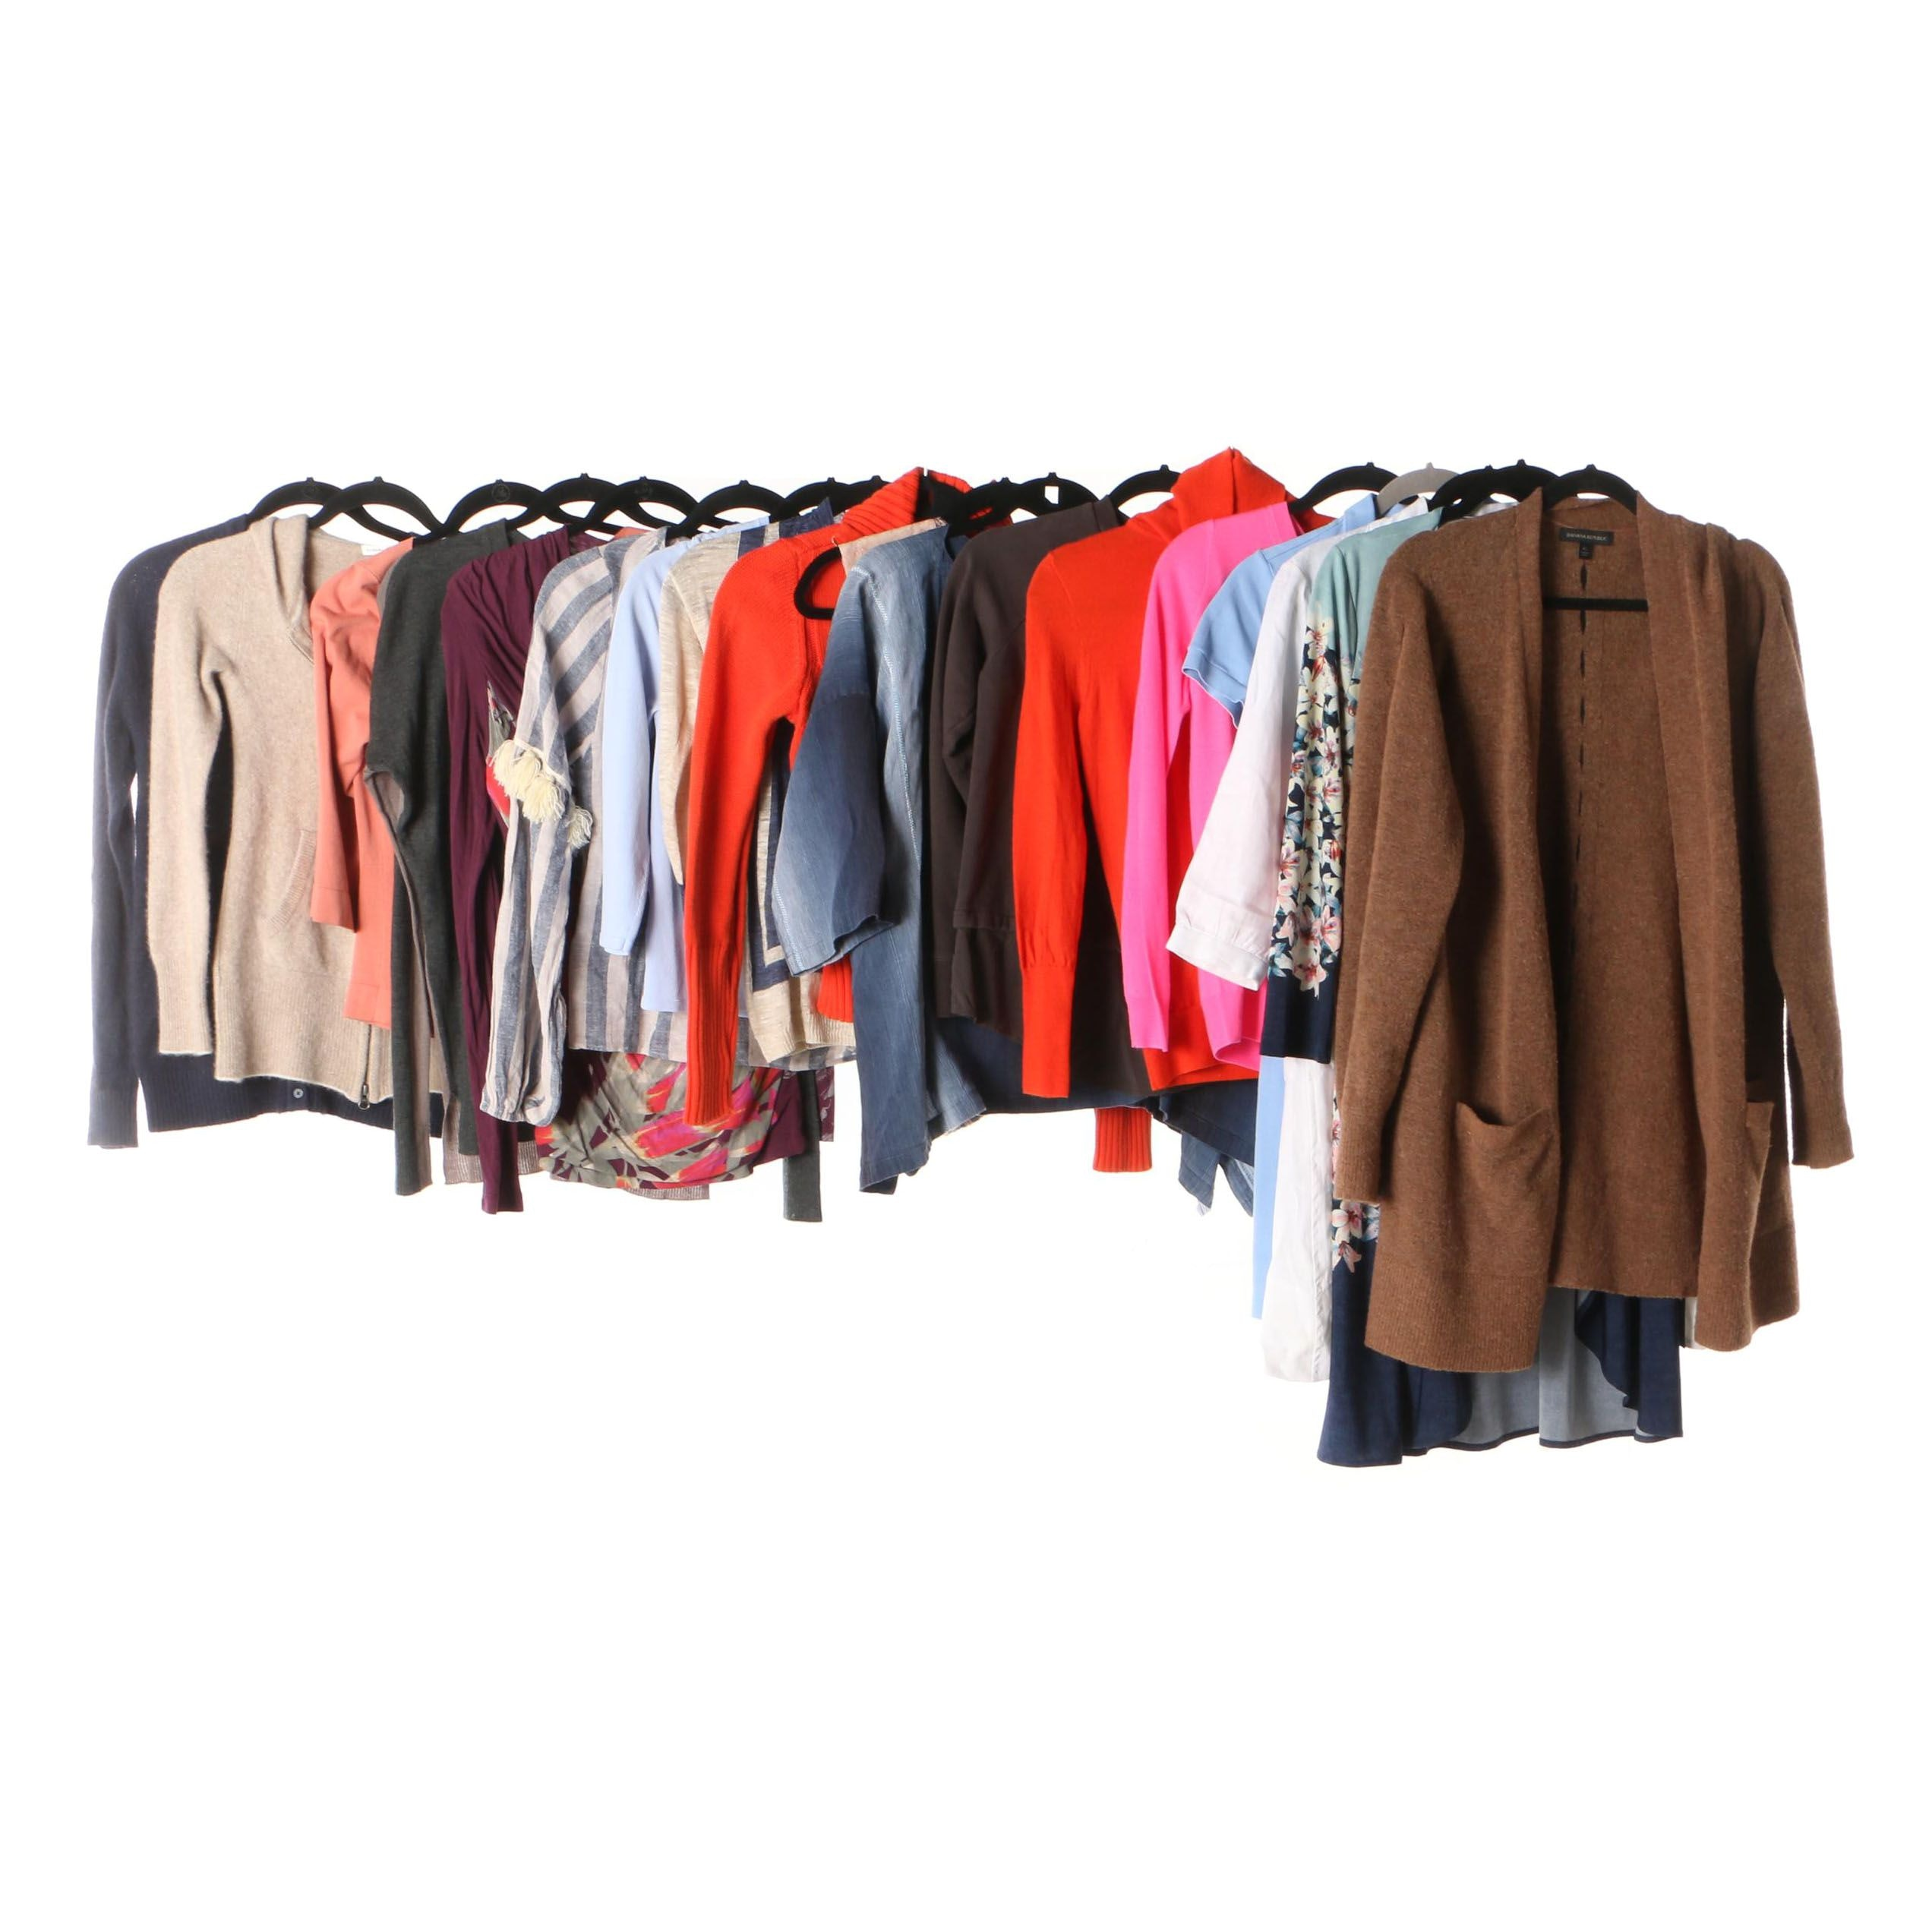 Women's Dresses and Tops Including Magaschoni, Banana Republic and J. Crew